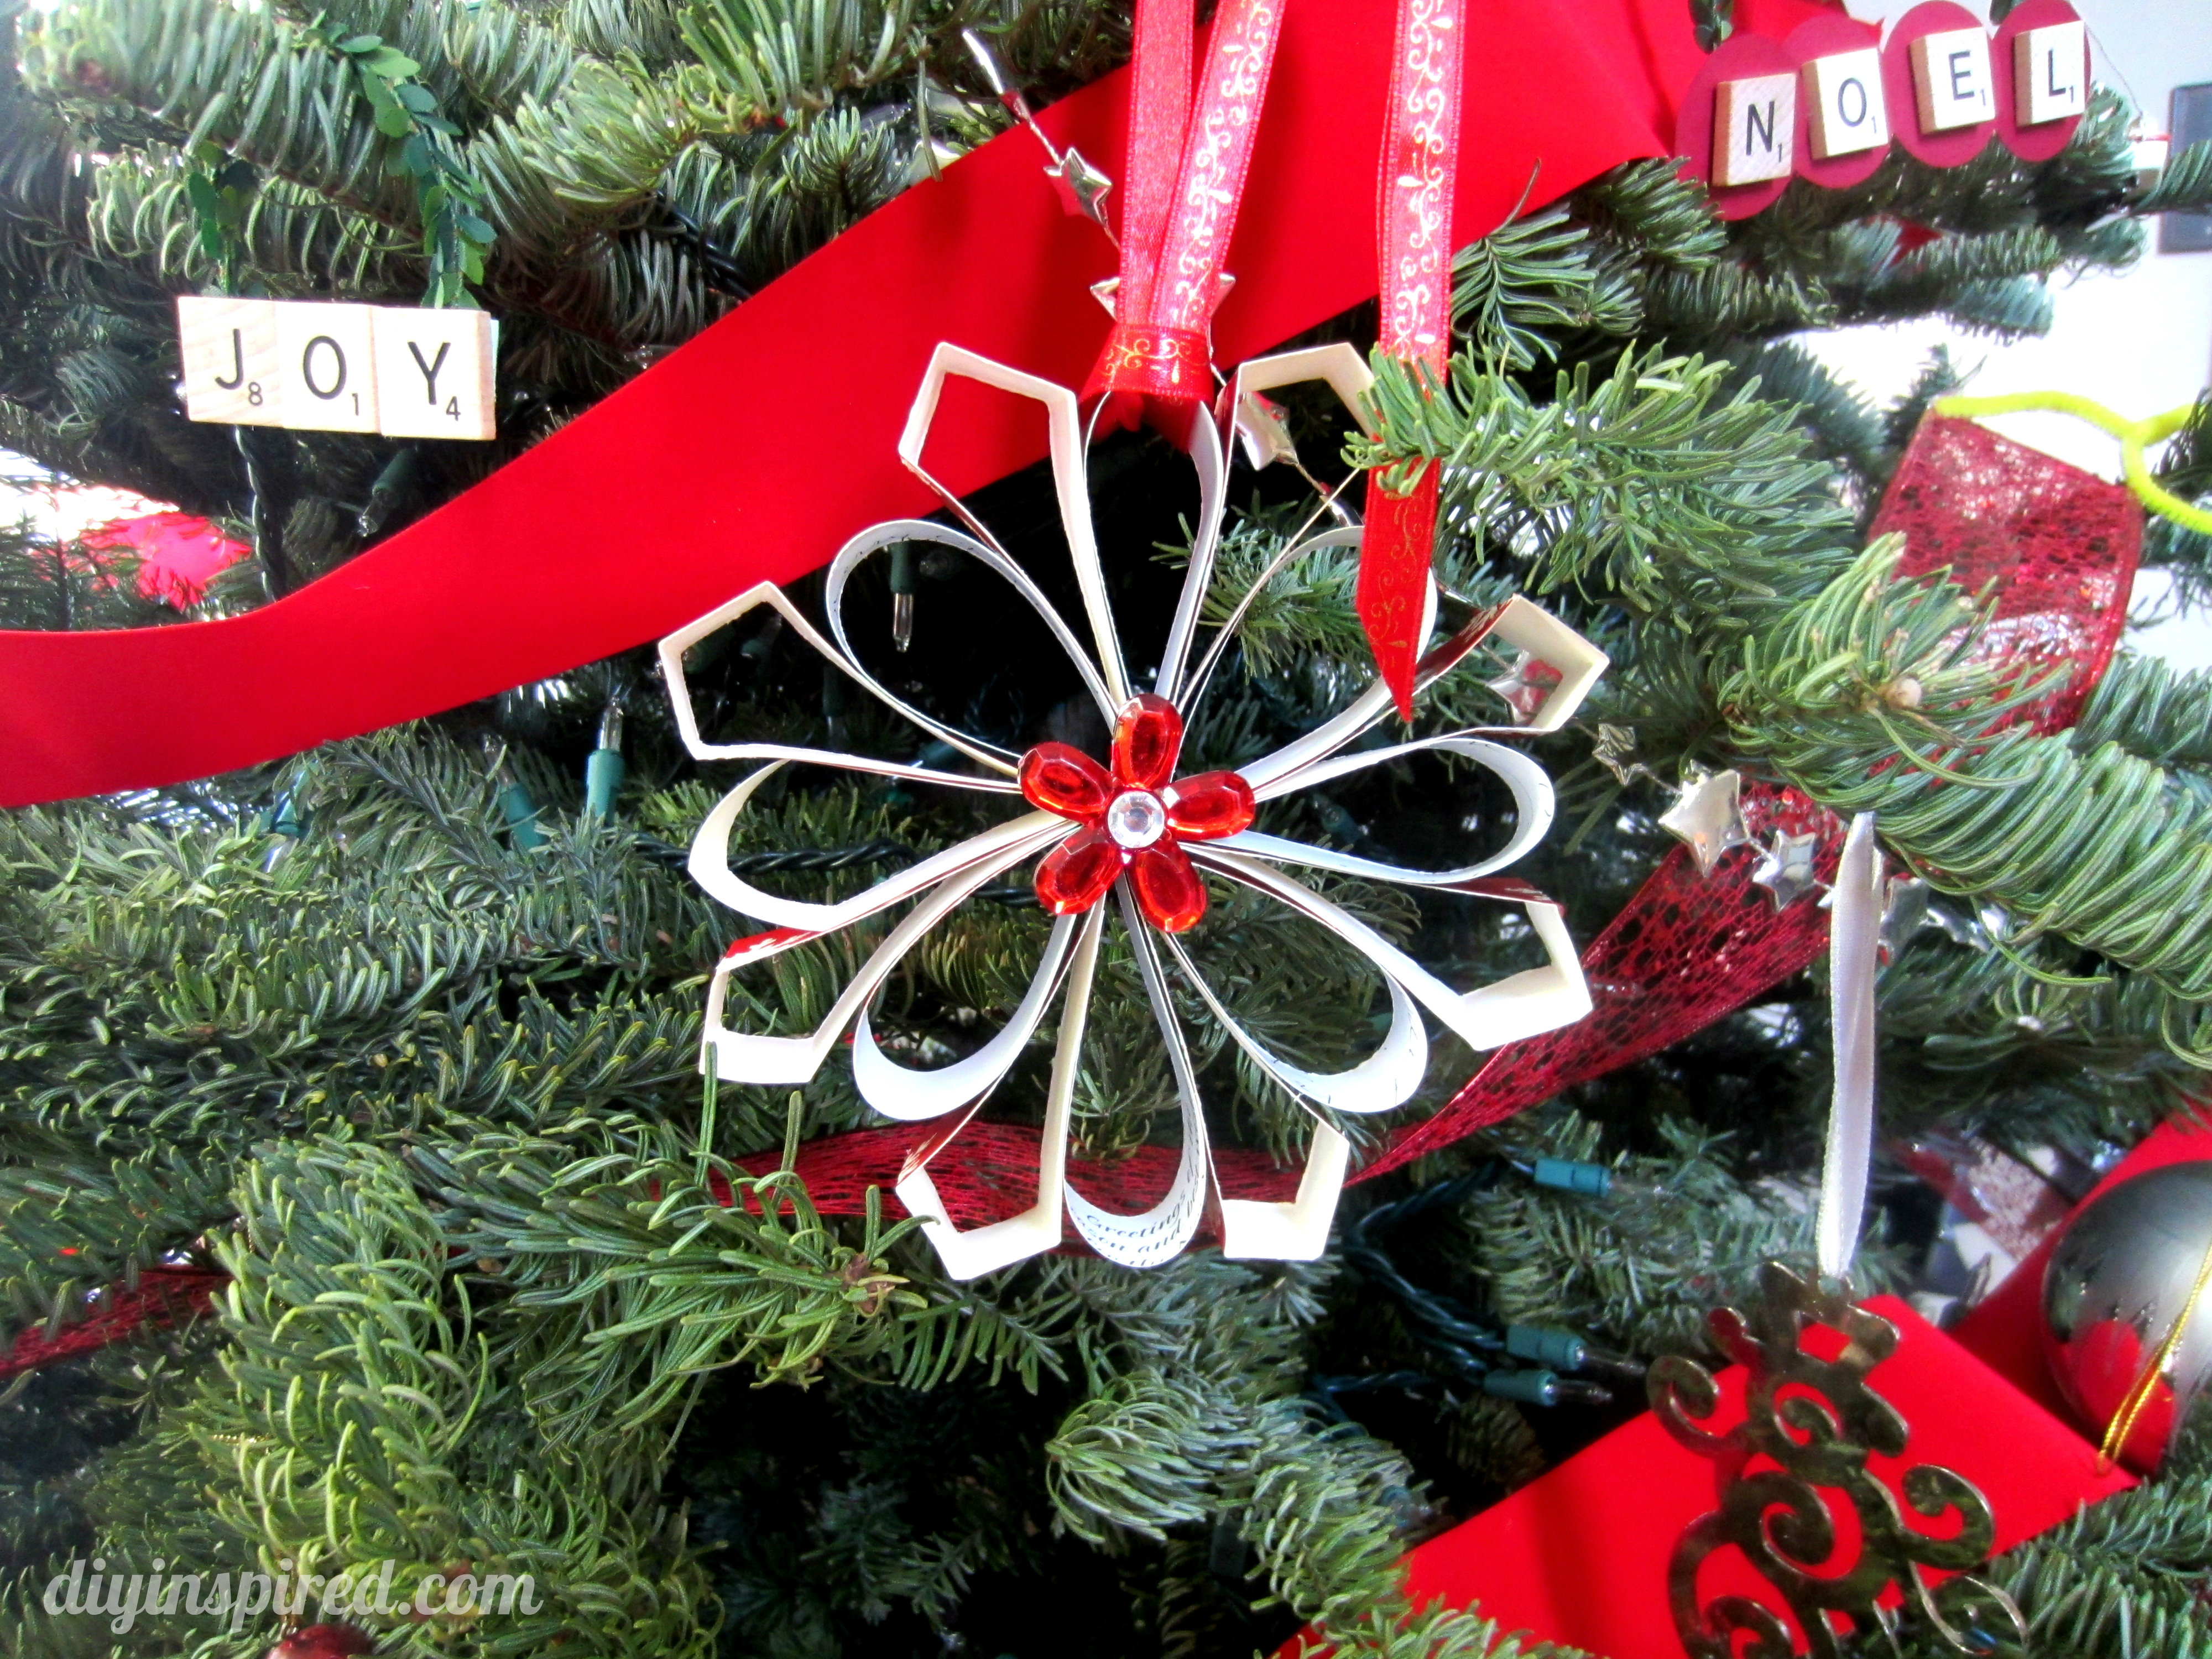 Recycled Christmas Ornaments Ideas.Recycled Christmas Card Ornaments Diy Inspired